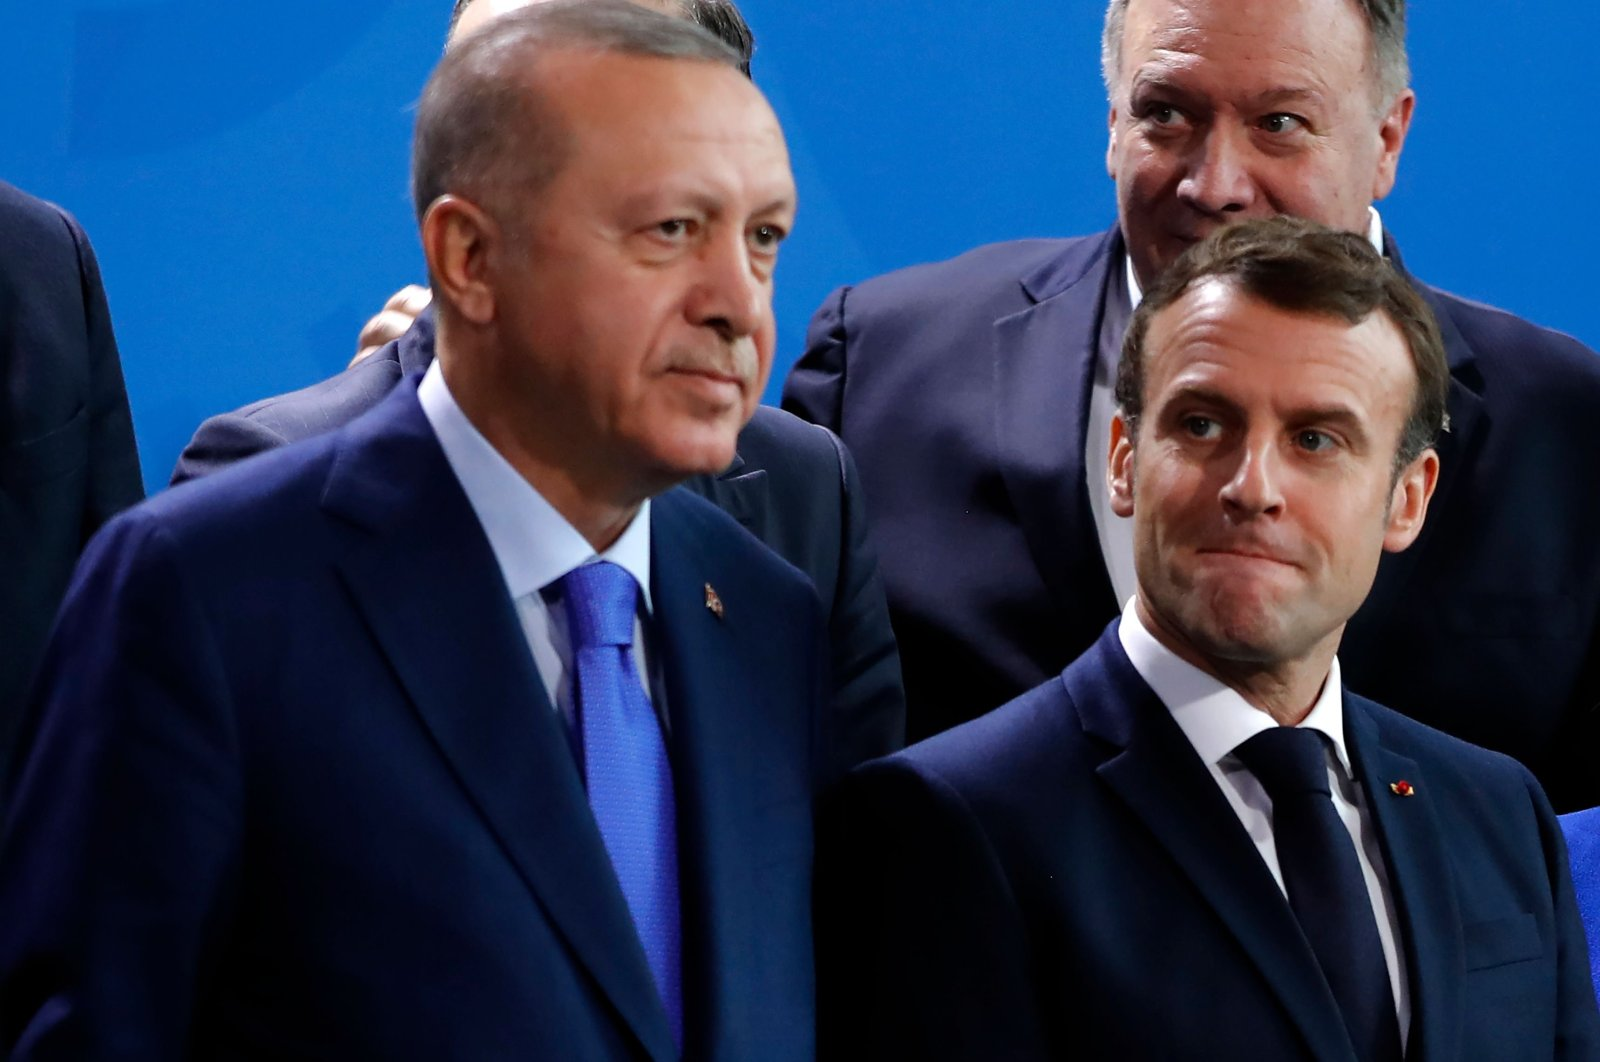 President Recep Tayyip Erdoğan (L) and French President Emmanuel Macron stand side-by-side as they wait for the family picture during a peace summit on Libya at the Chancellery in Berlin, Germany, Jan. 19, 2020. (AFP Photo)